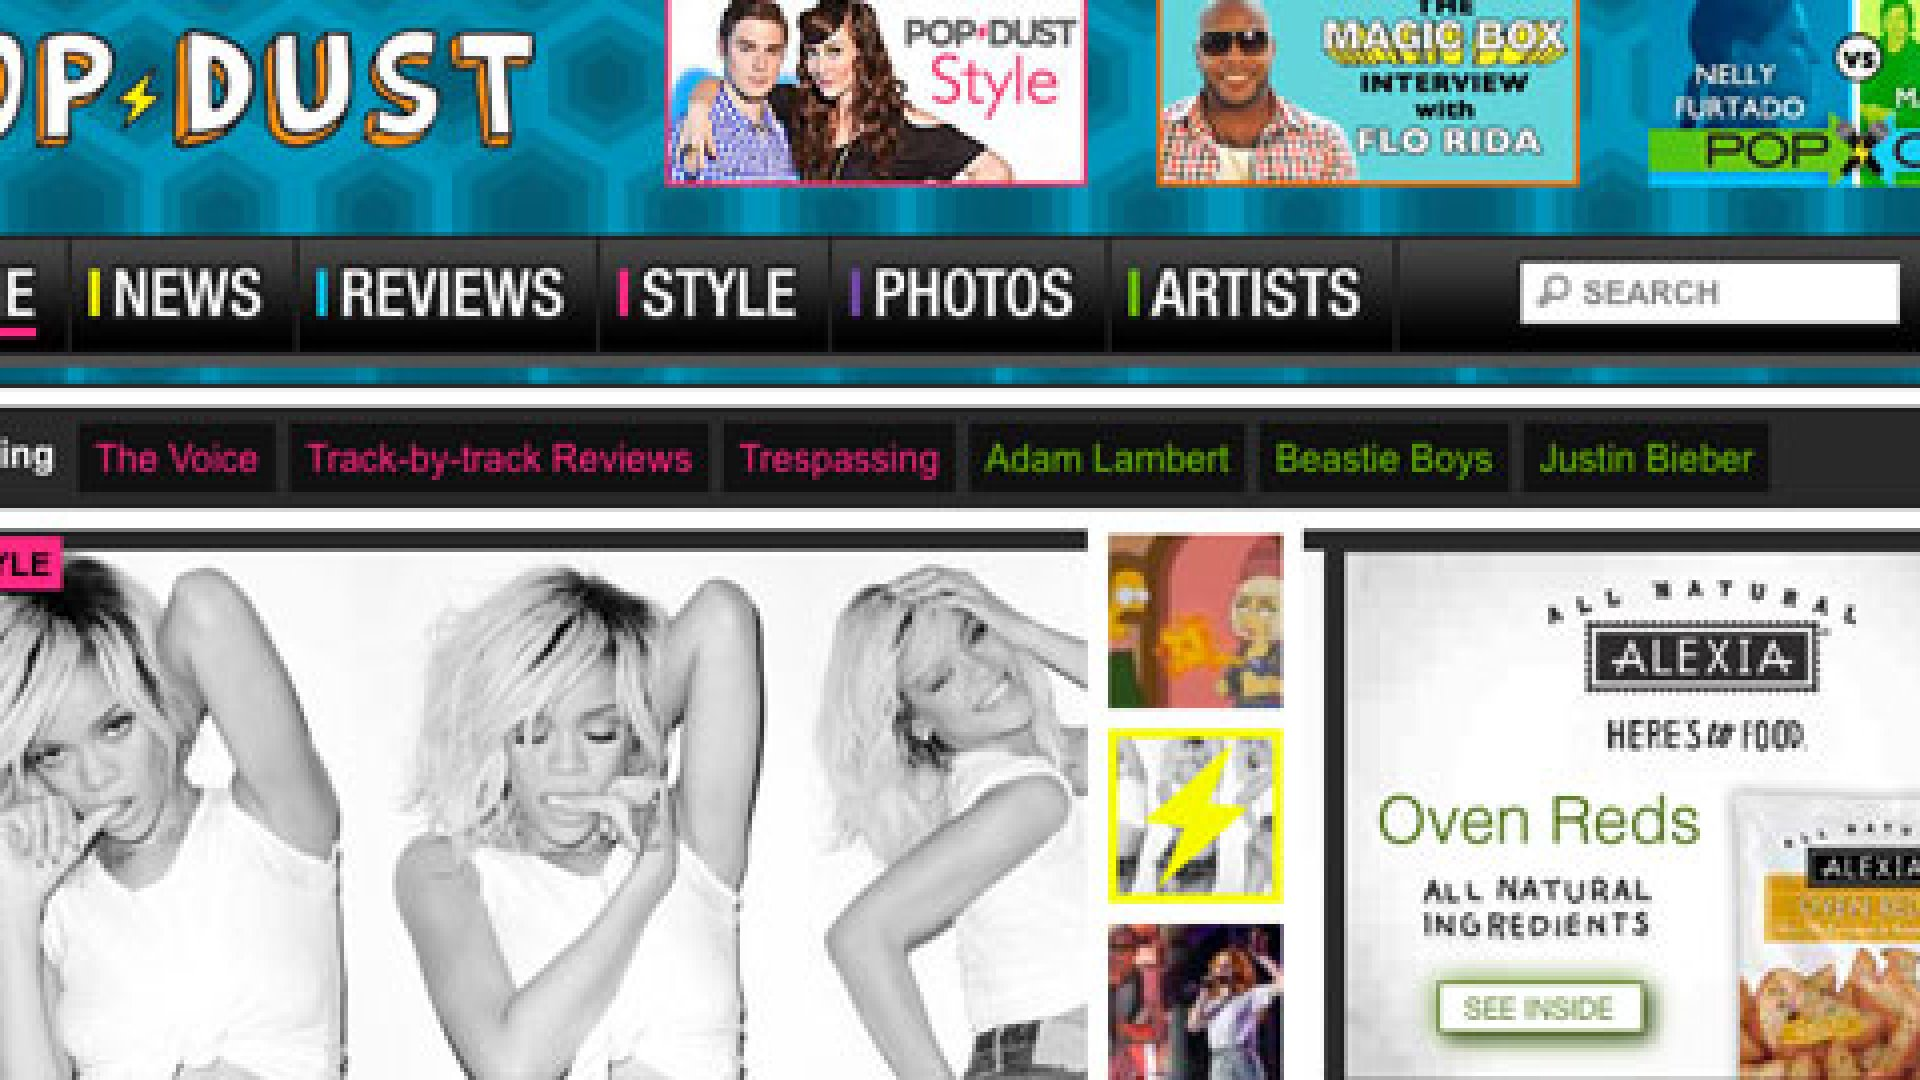 Popdust, a pop-culture site launched this year, feeds hungry fans a steady diet of the latest pop-music news, reviews, and videos.